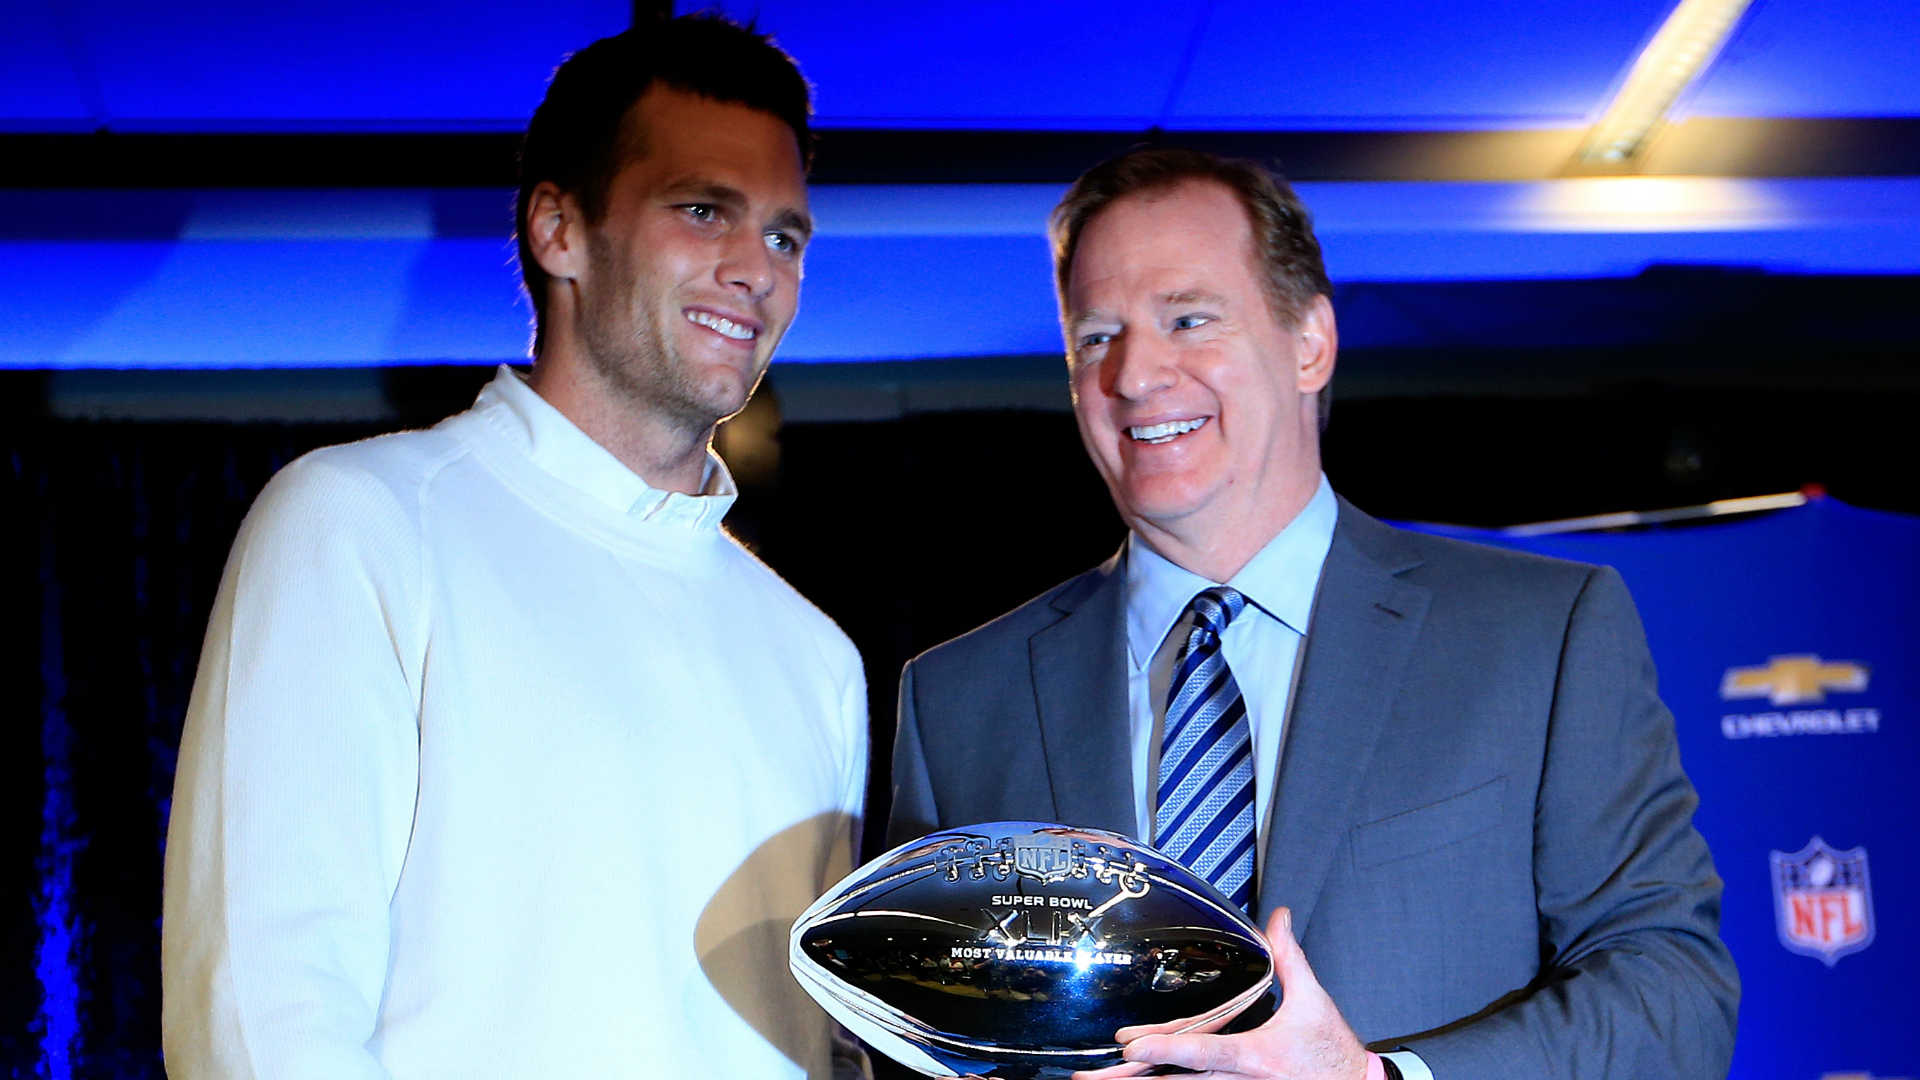 Tom-Brady-Roger-Goodell-020215-Getty-FTR